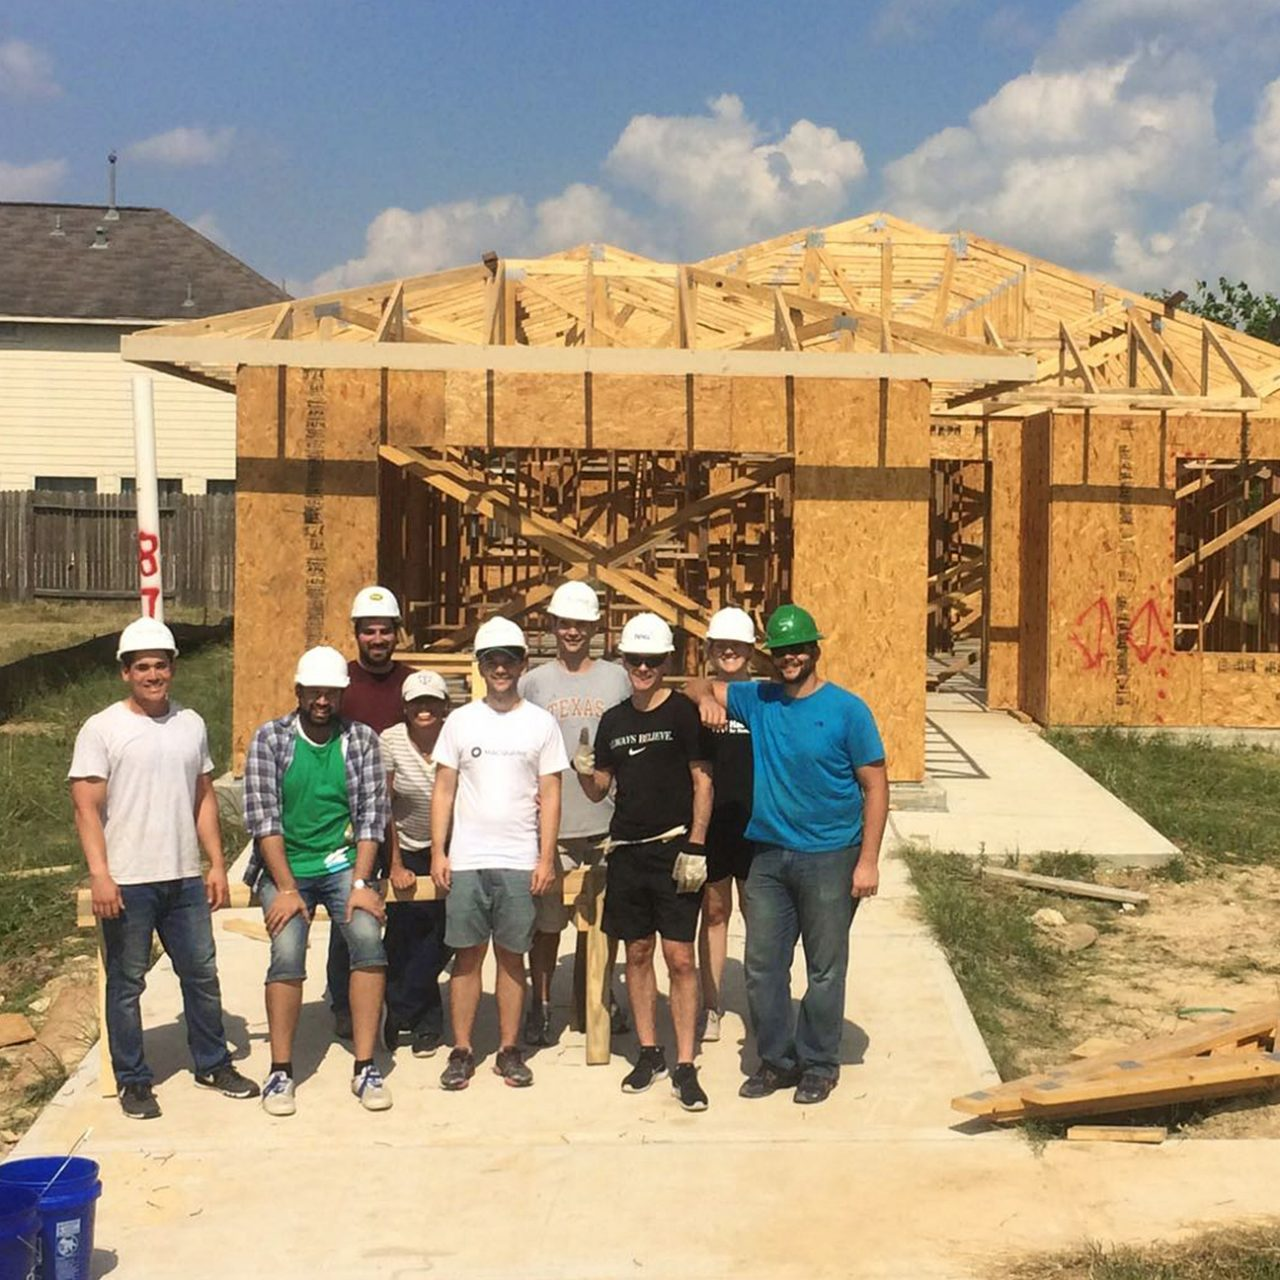 Houston staff helped build a home for people in need